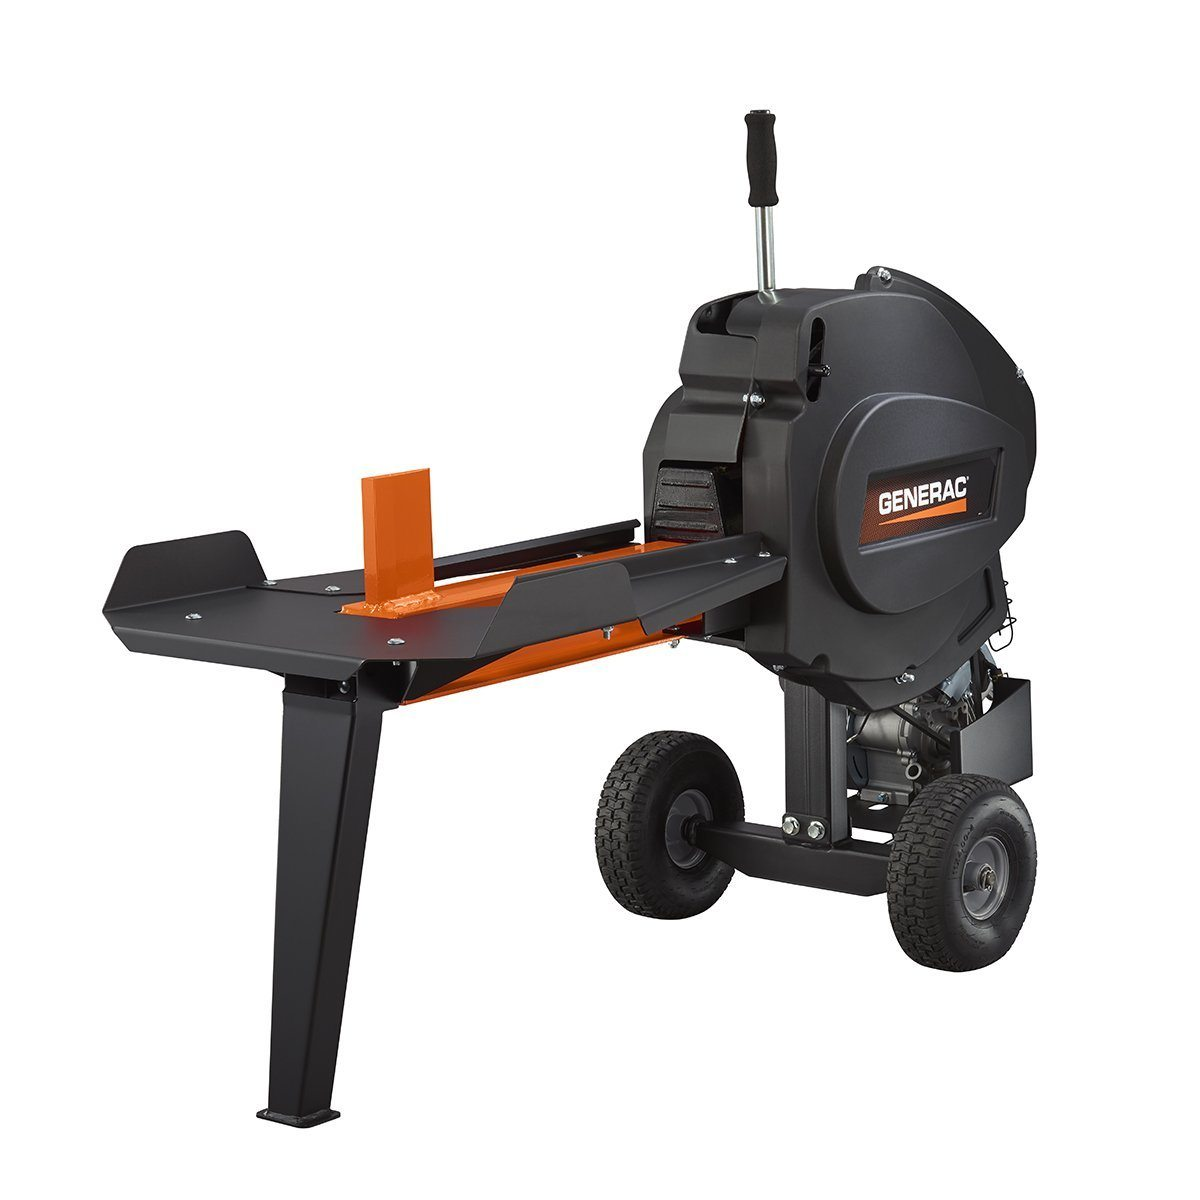 Generac 22-Ton Kinetic Log Splitter